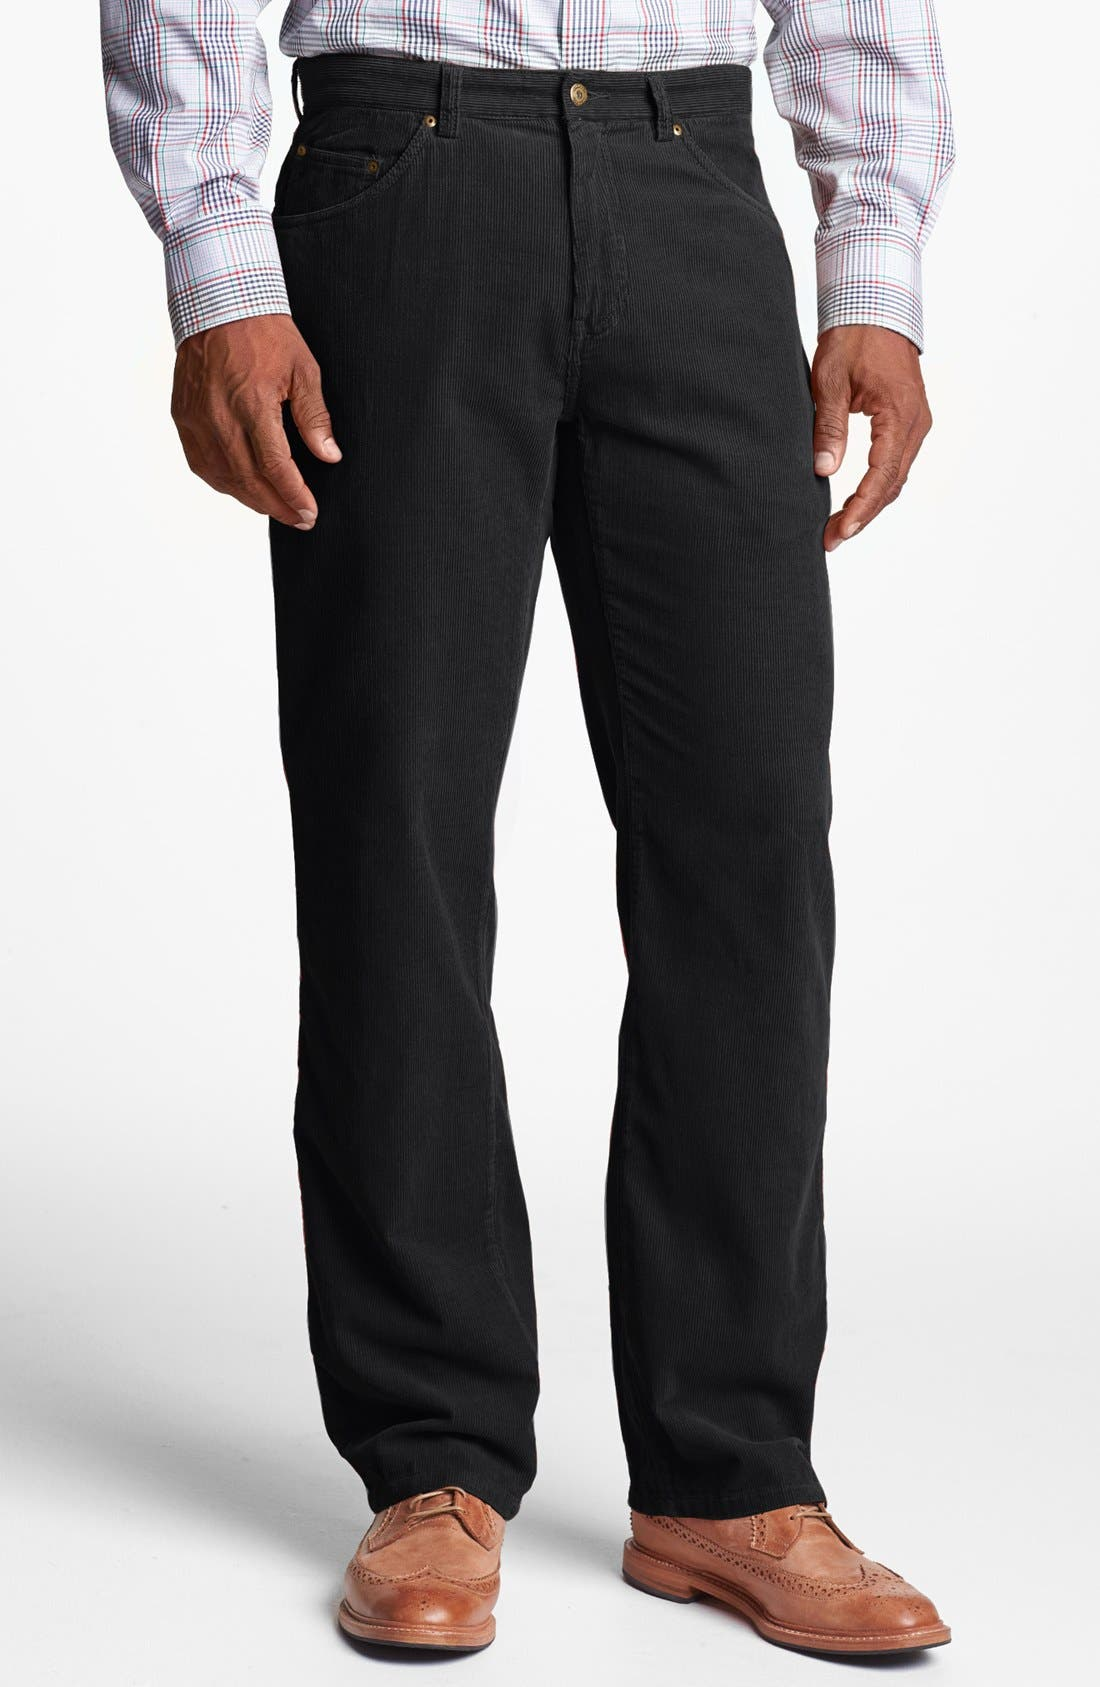 Alternate Image 1 Selected - Maker & Company Regular Fit Straight Leg Corduroy Pants